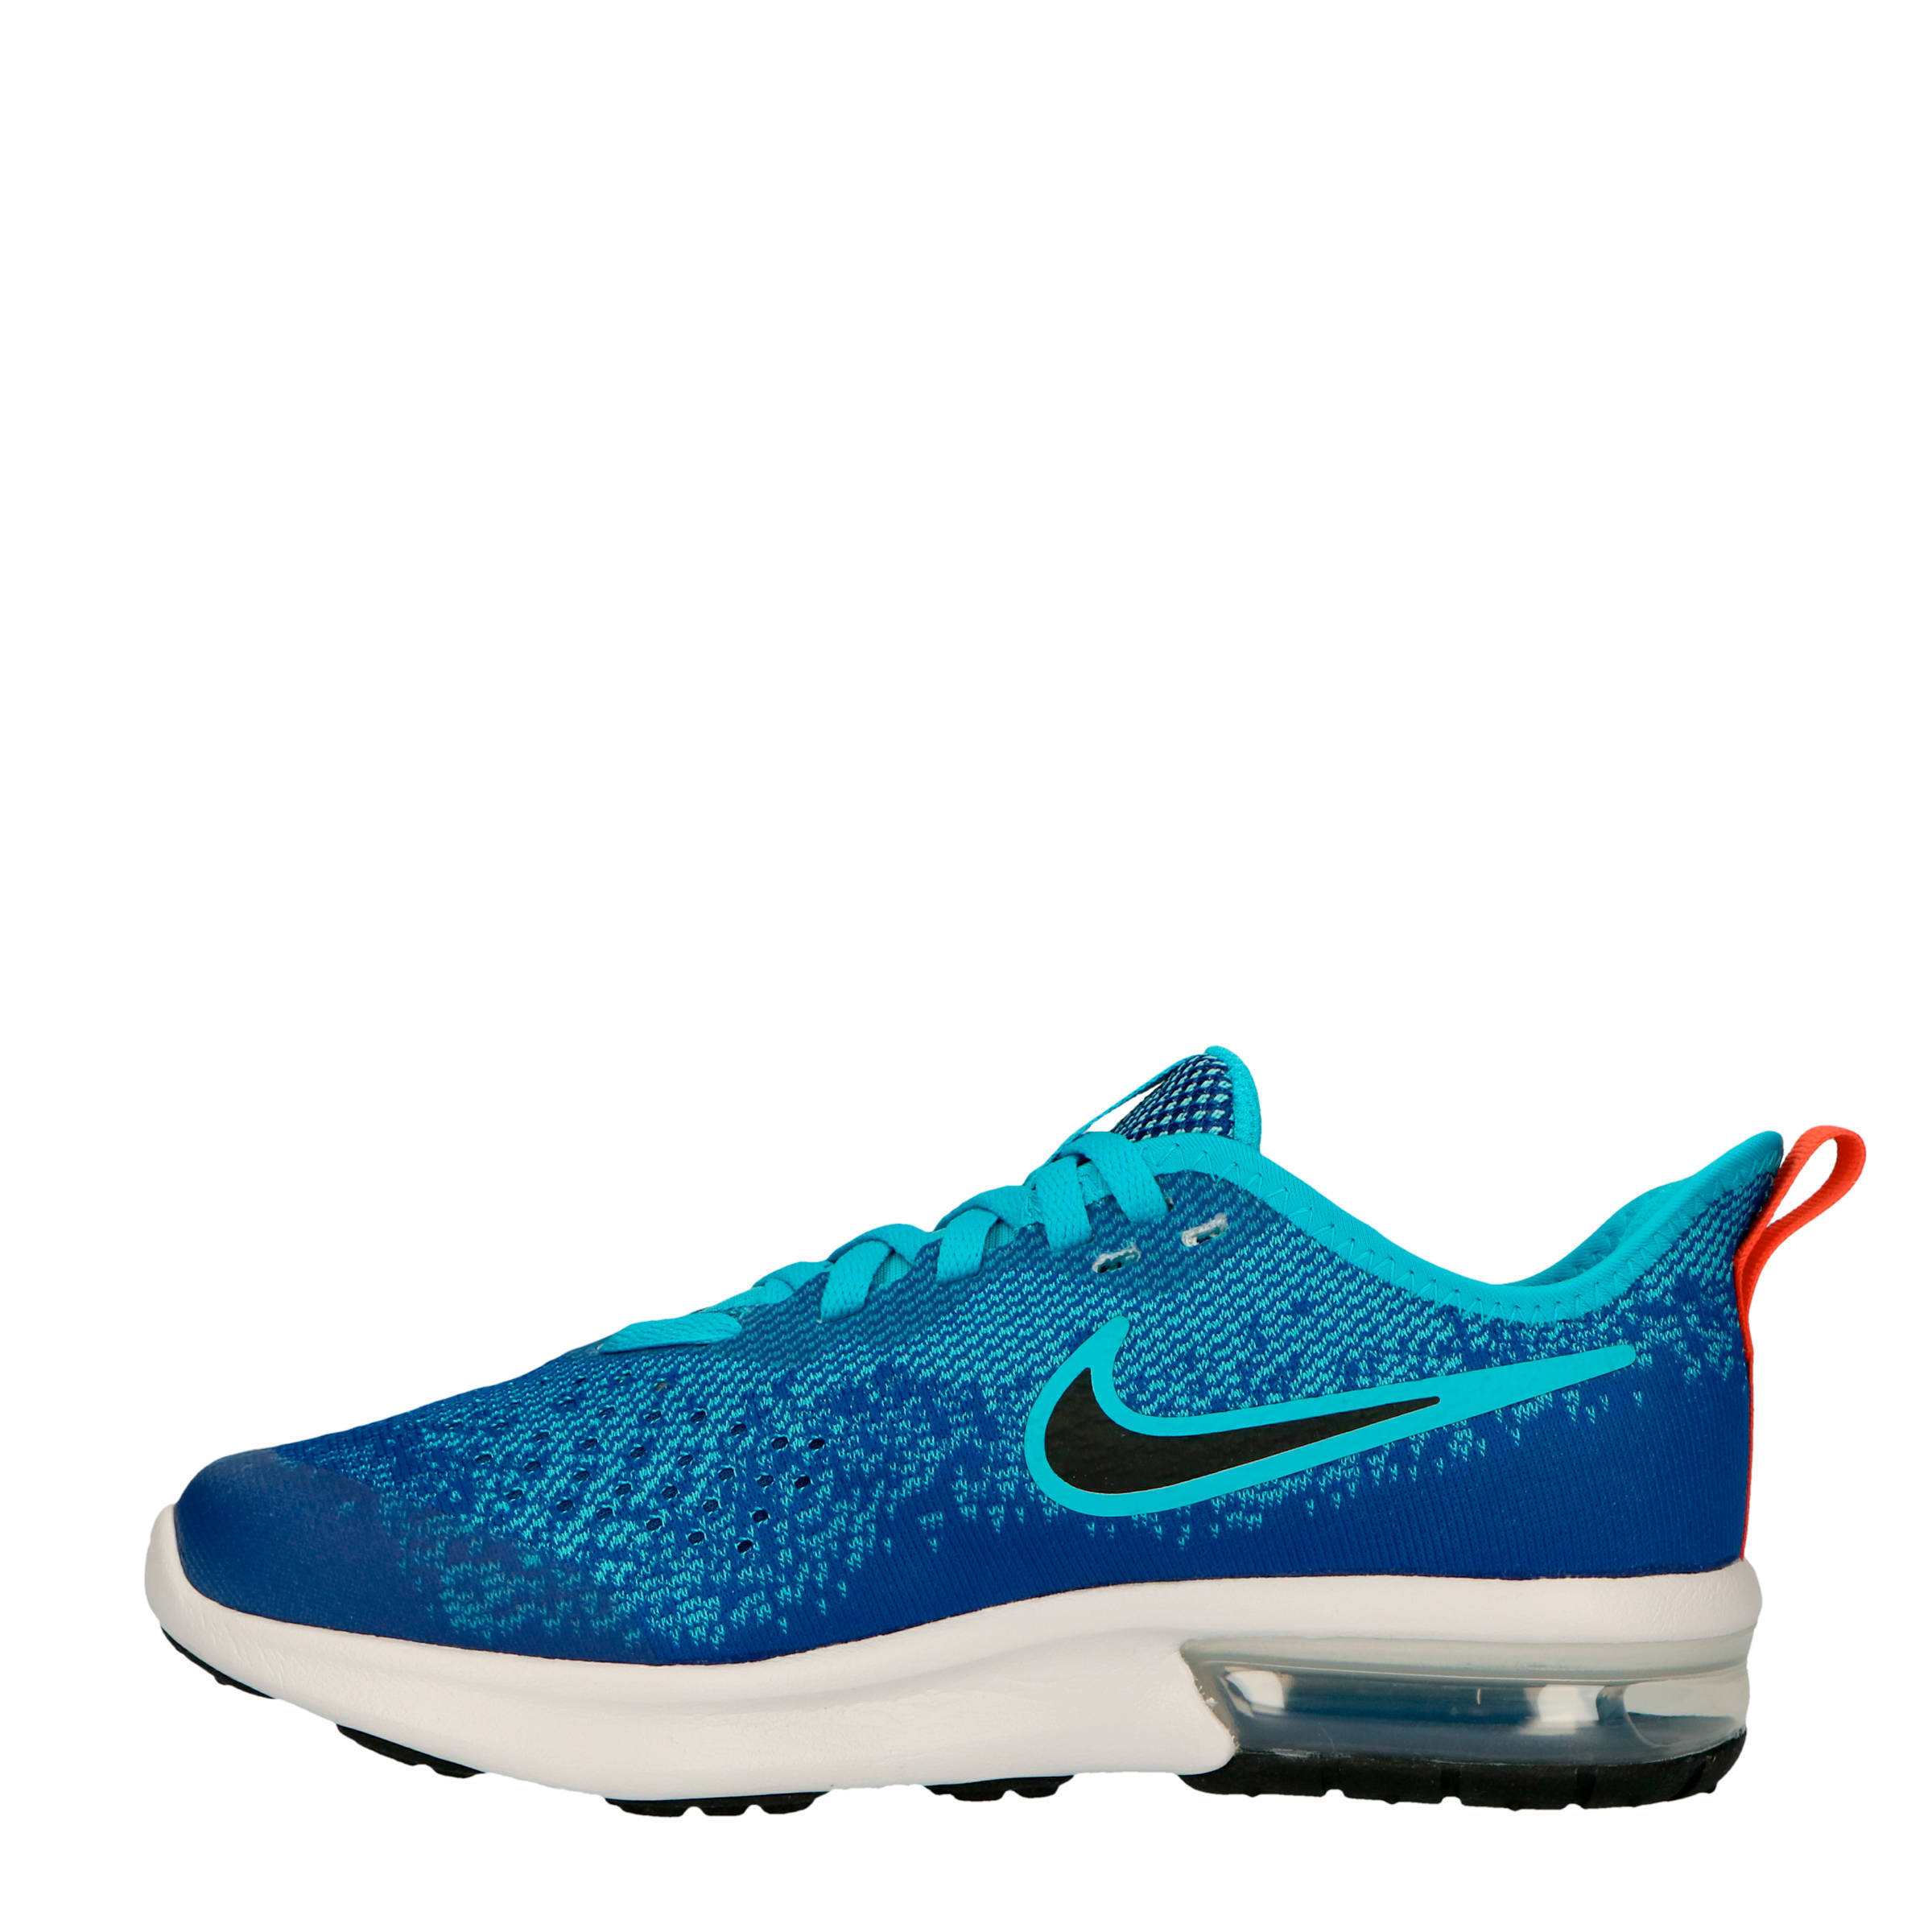 c8817ad5687 Nike Air Max Sequent 4 sneakers | wehkamp